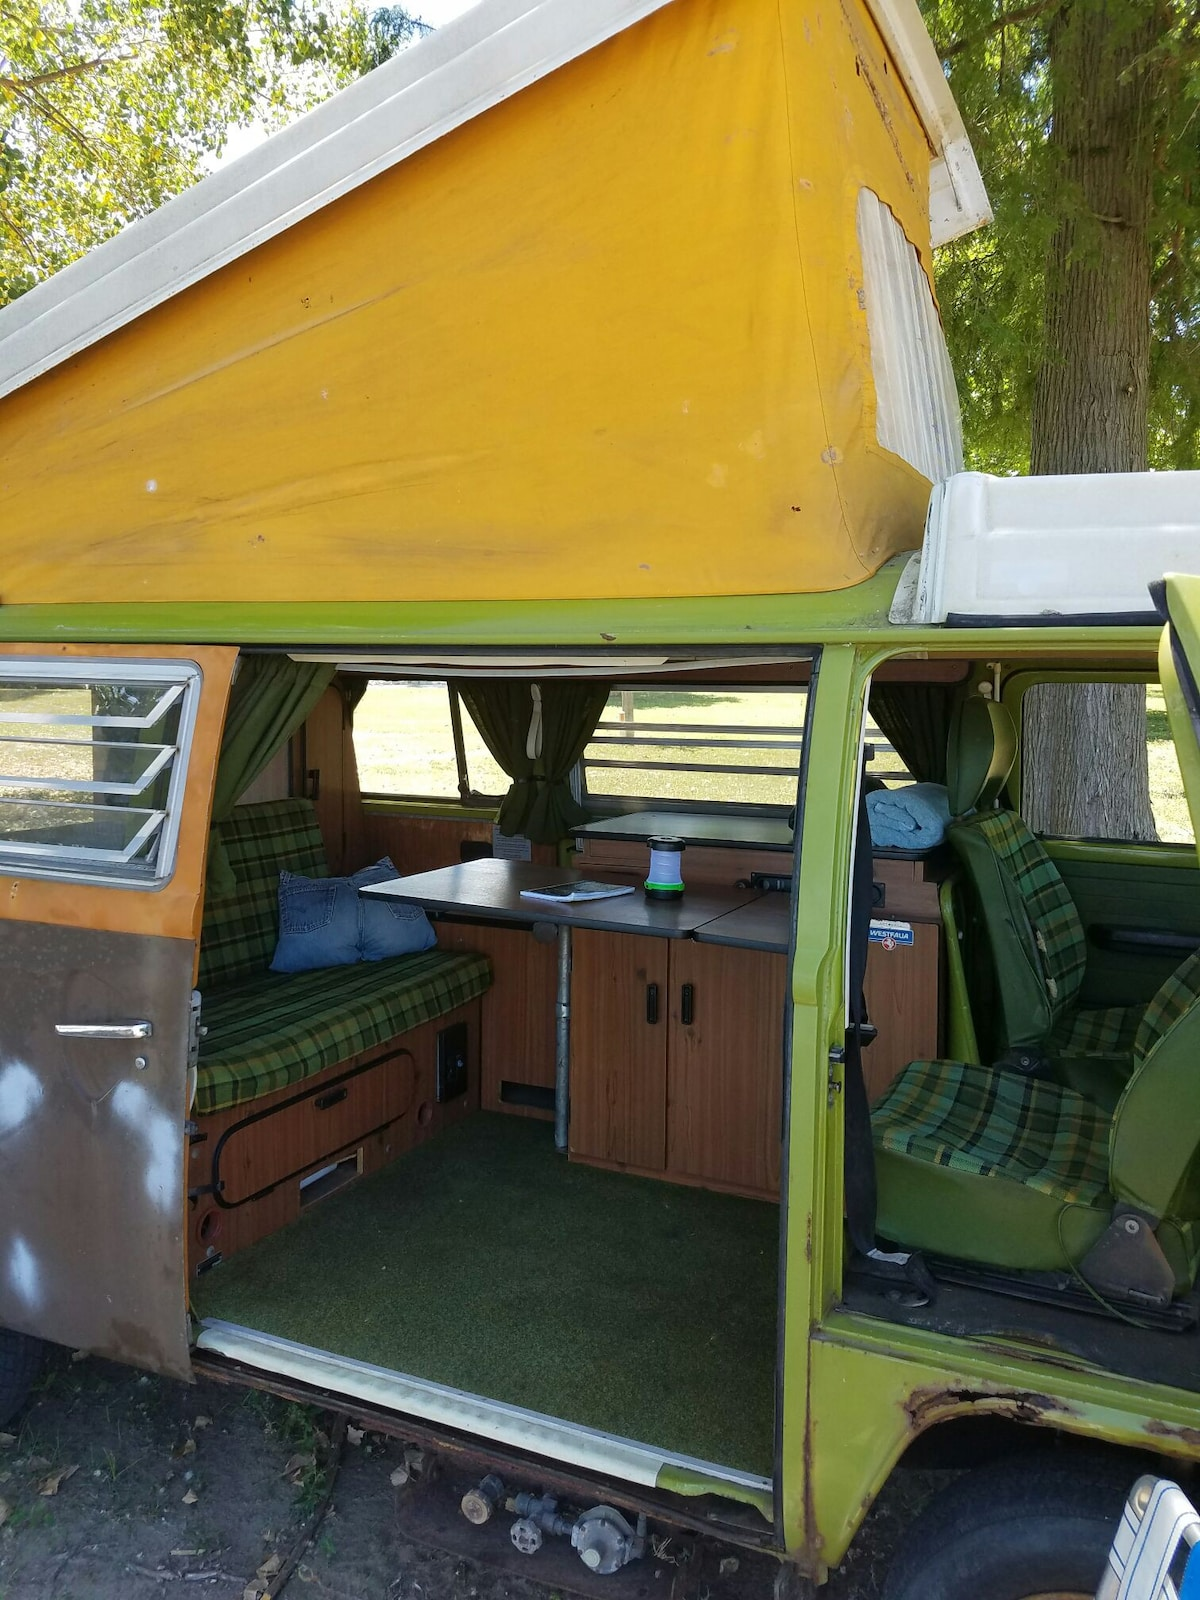 Fold up the sofa bed and put up the table! & The Rustic Hippie Van Camping with Kayaks! - Campers/RVs for Rent ...